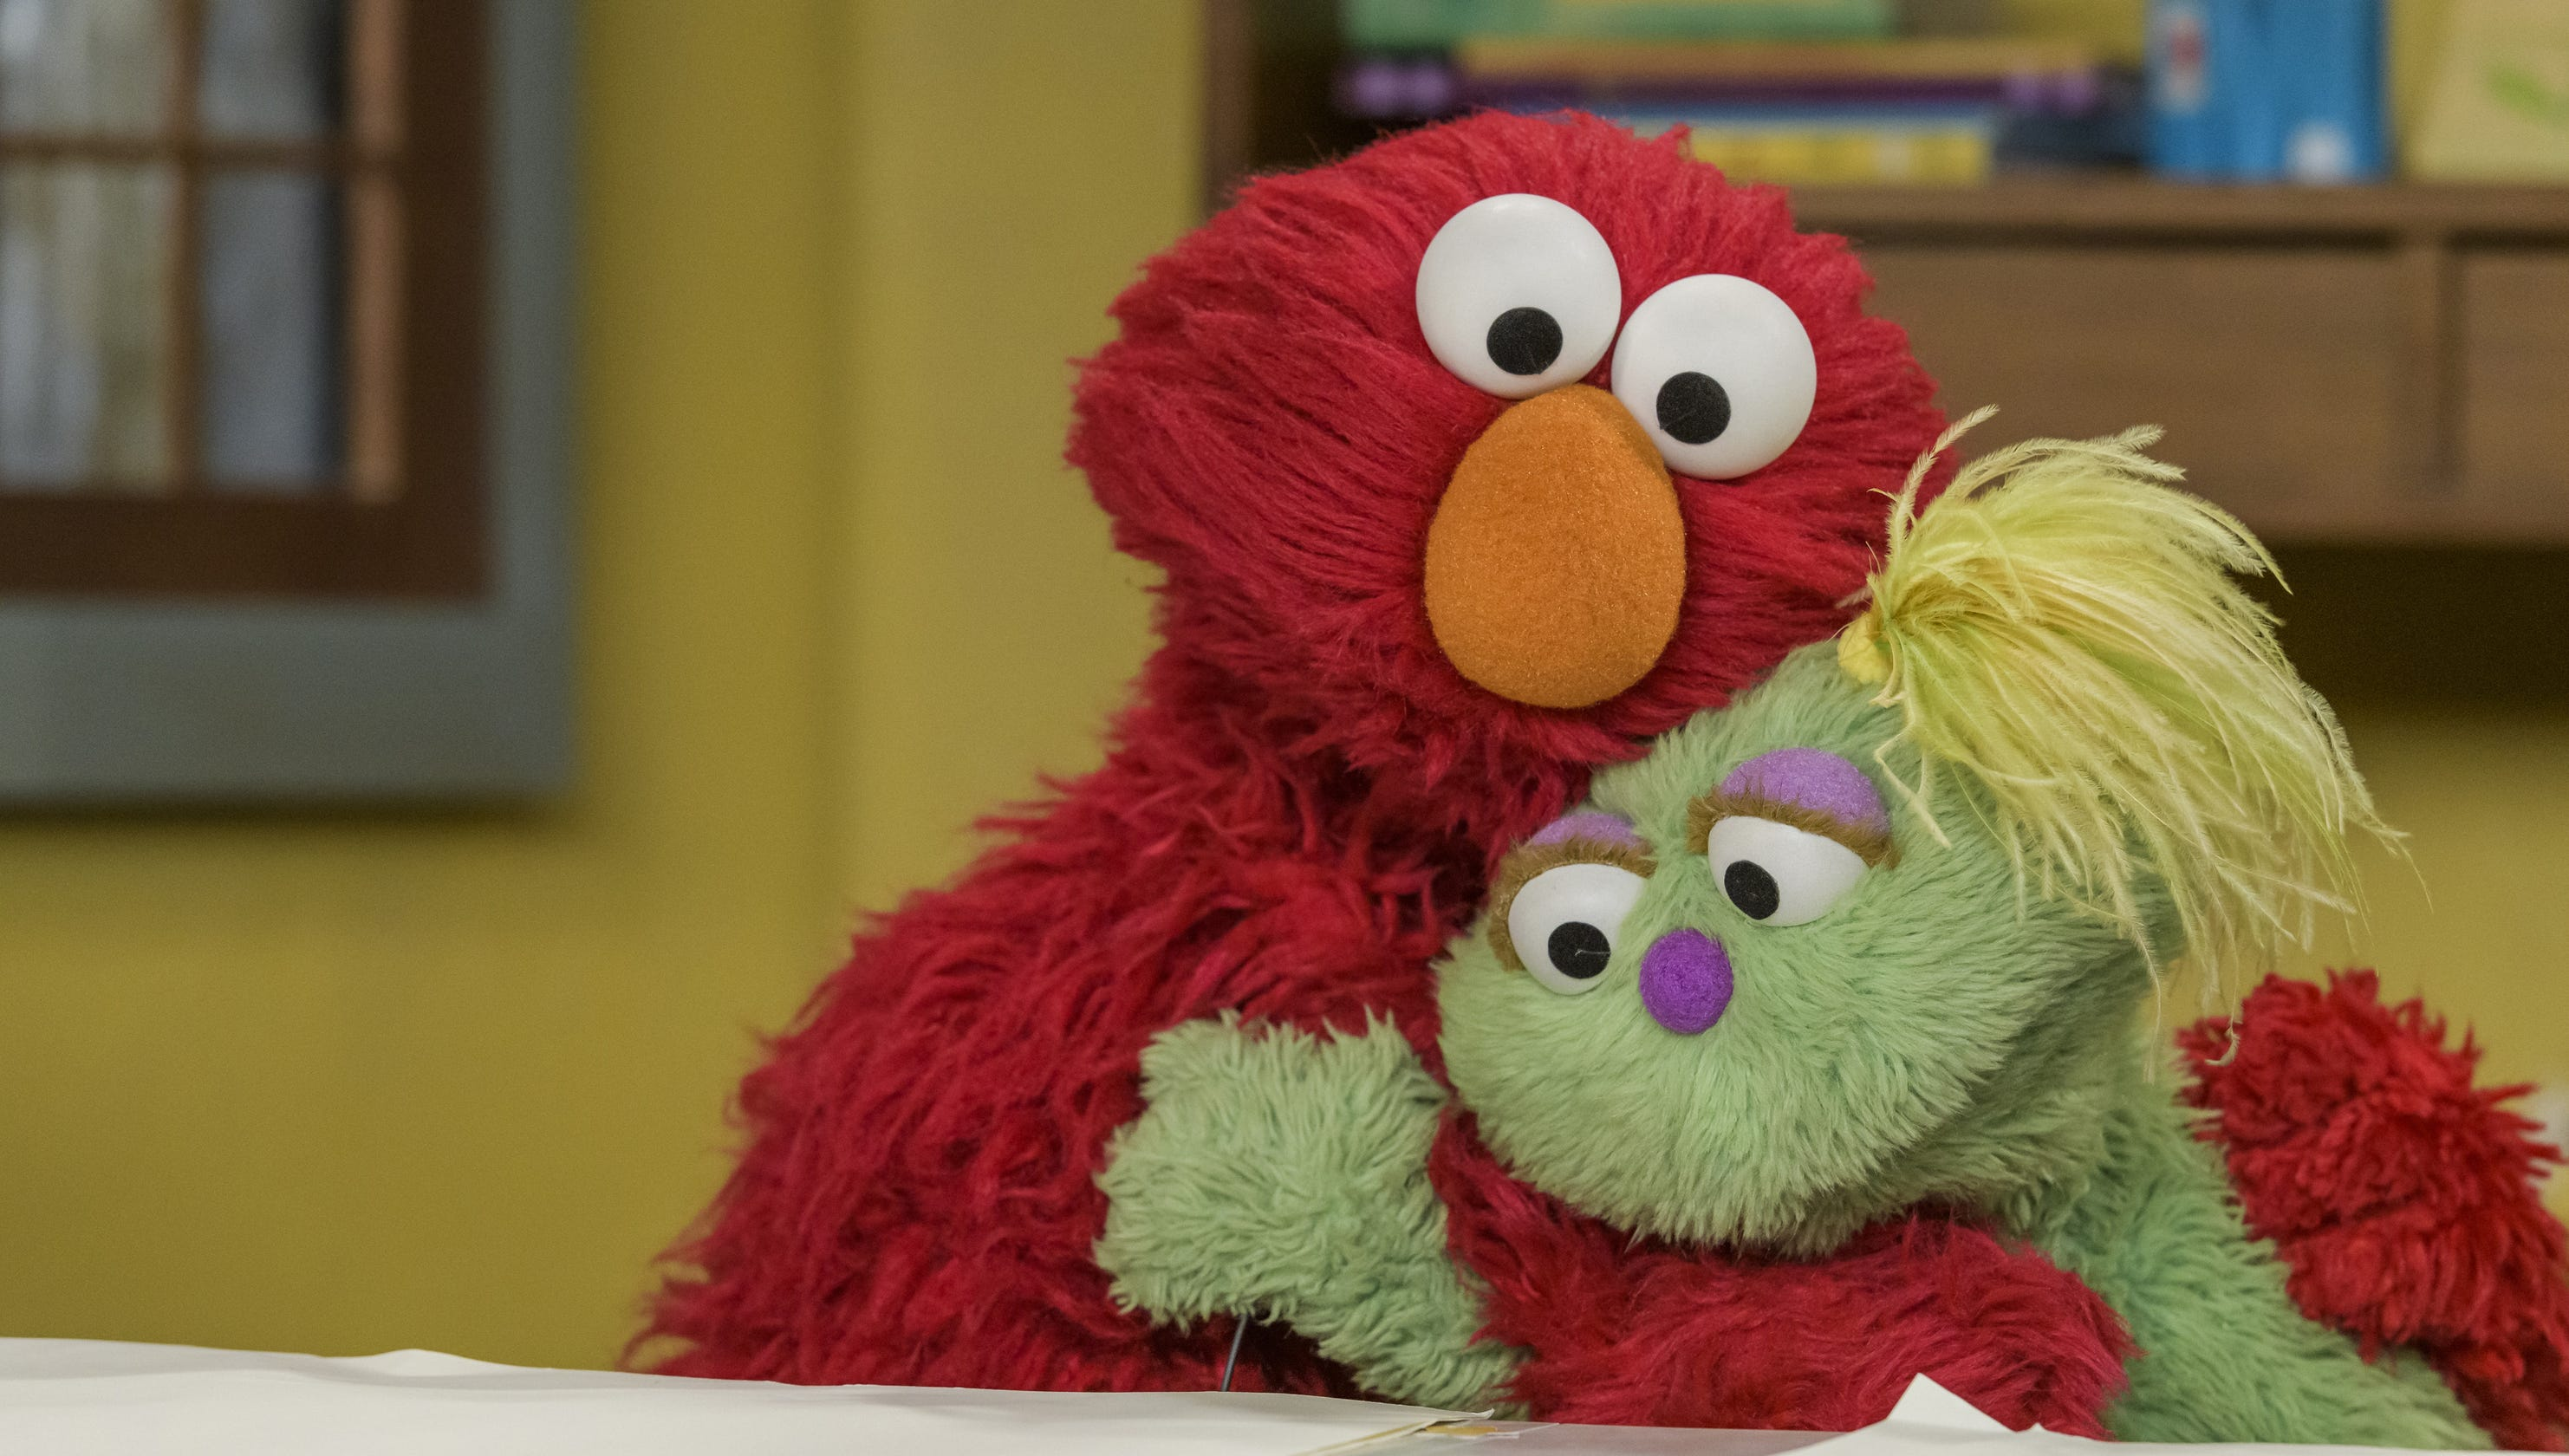 Sesame Street' introduces Karli, a Muppet in foster care